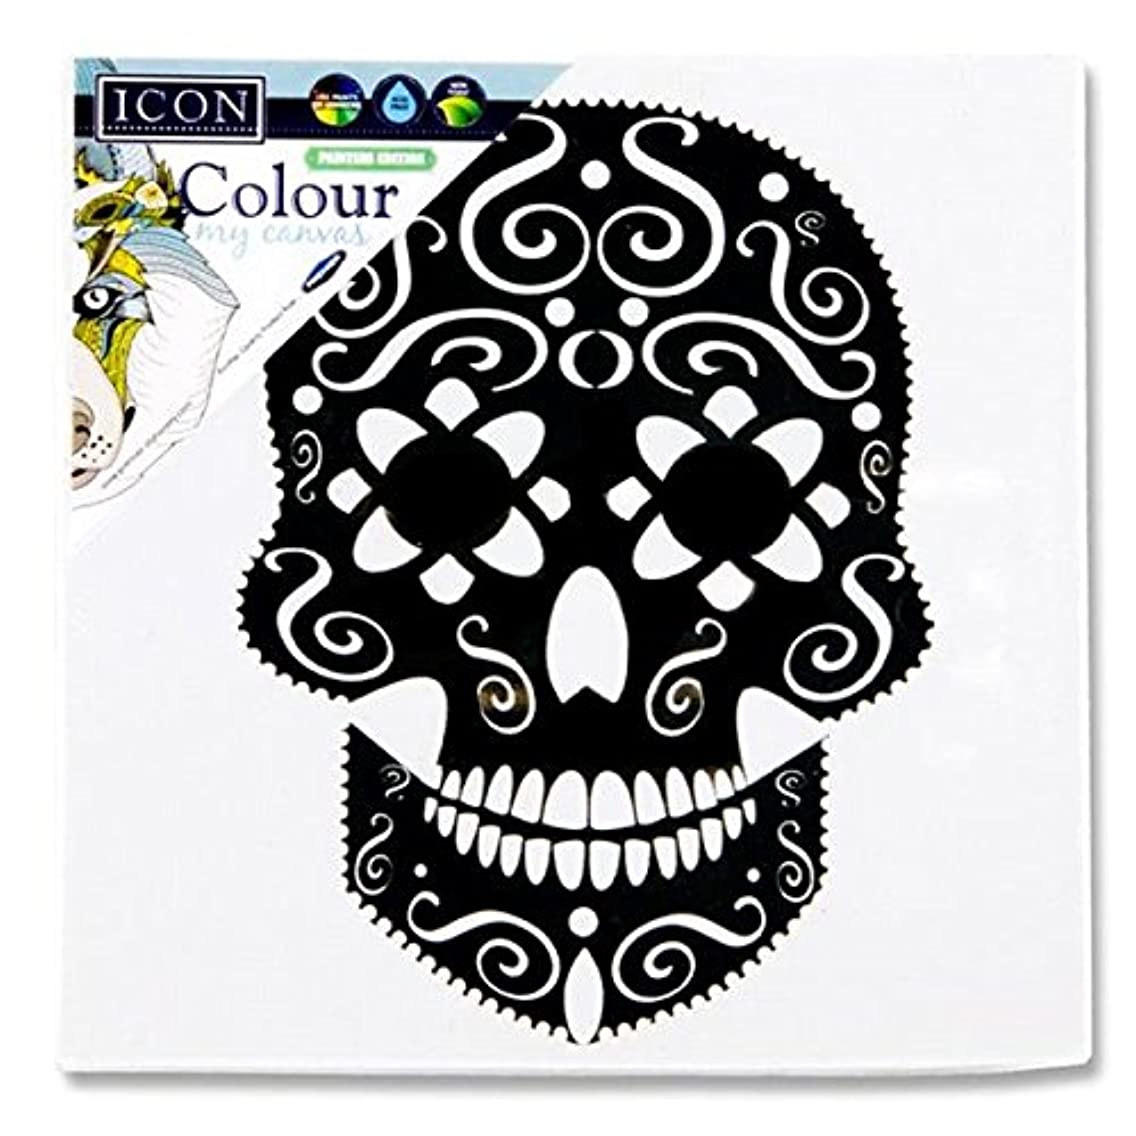 Premier Stationery G3812517 100 x 100 mm My Canvas Skull Icon Colour